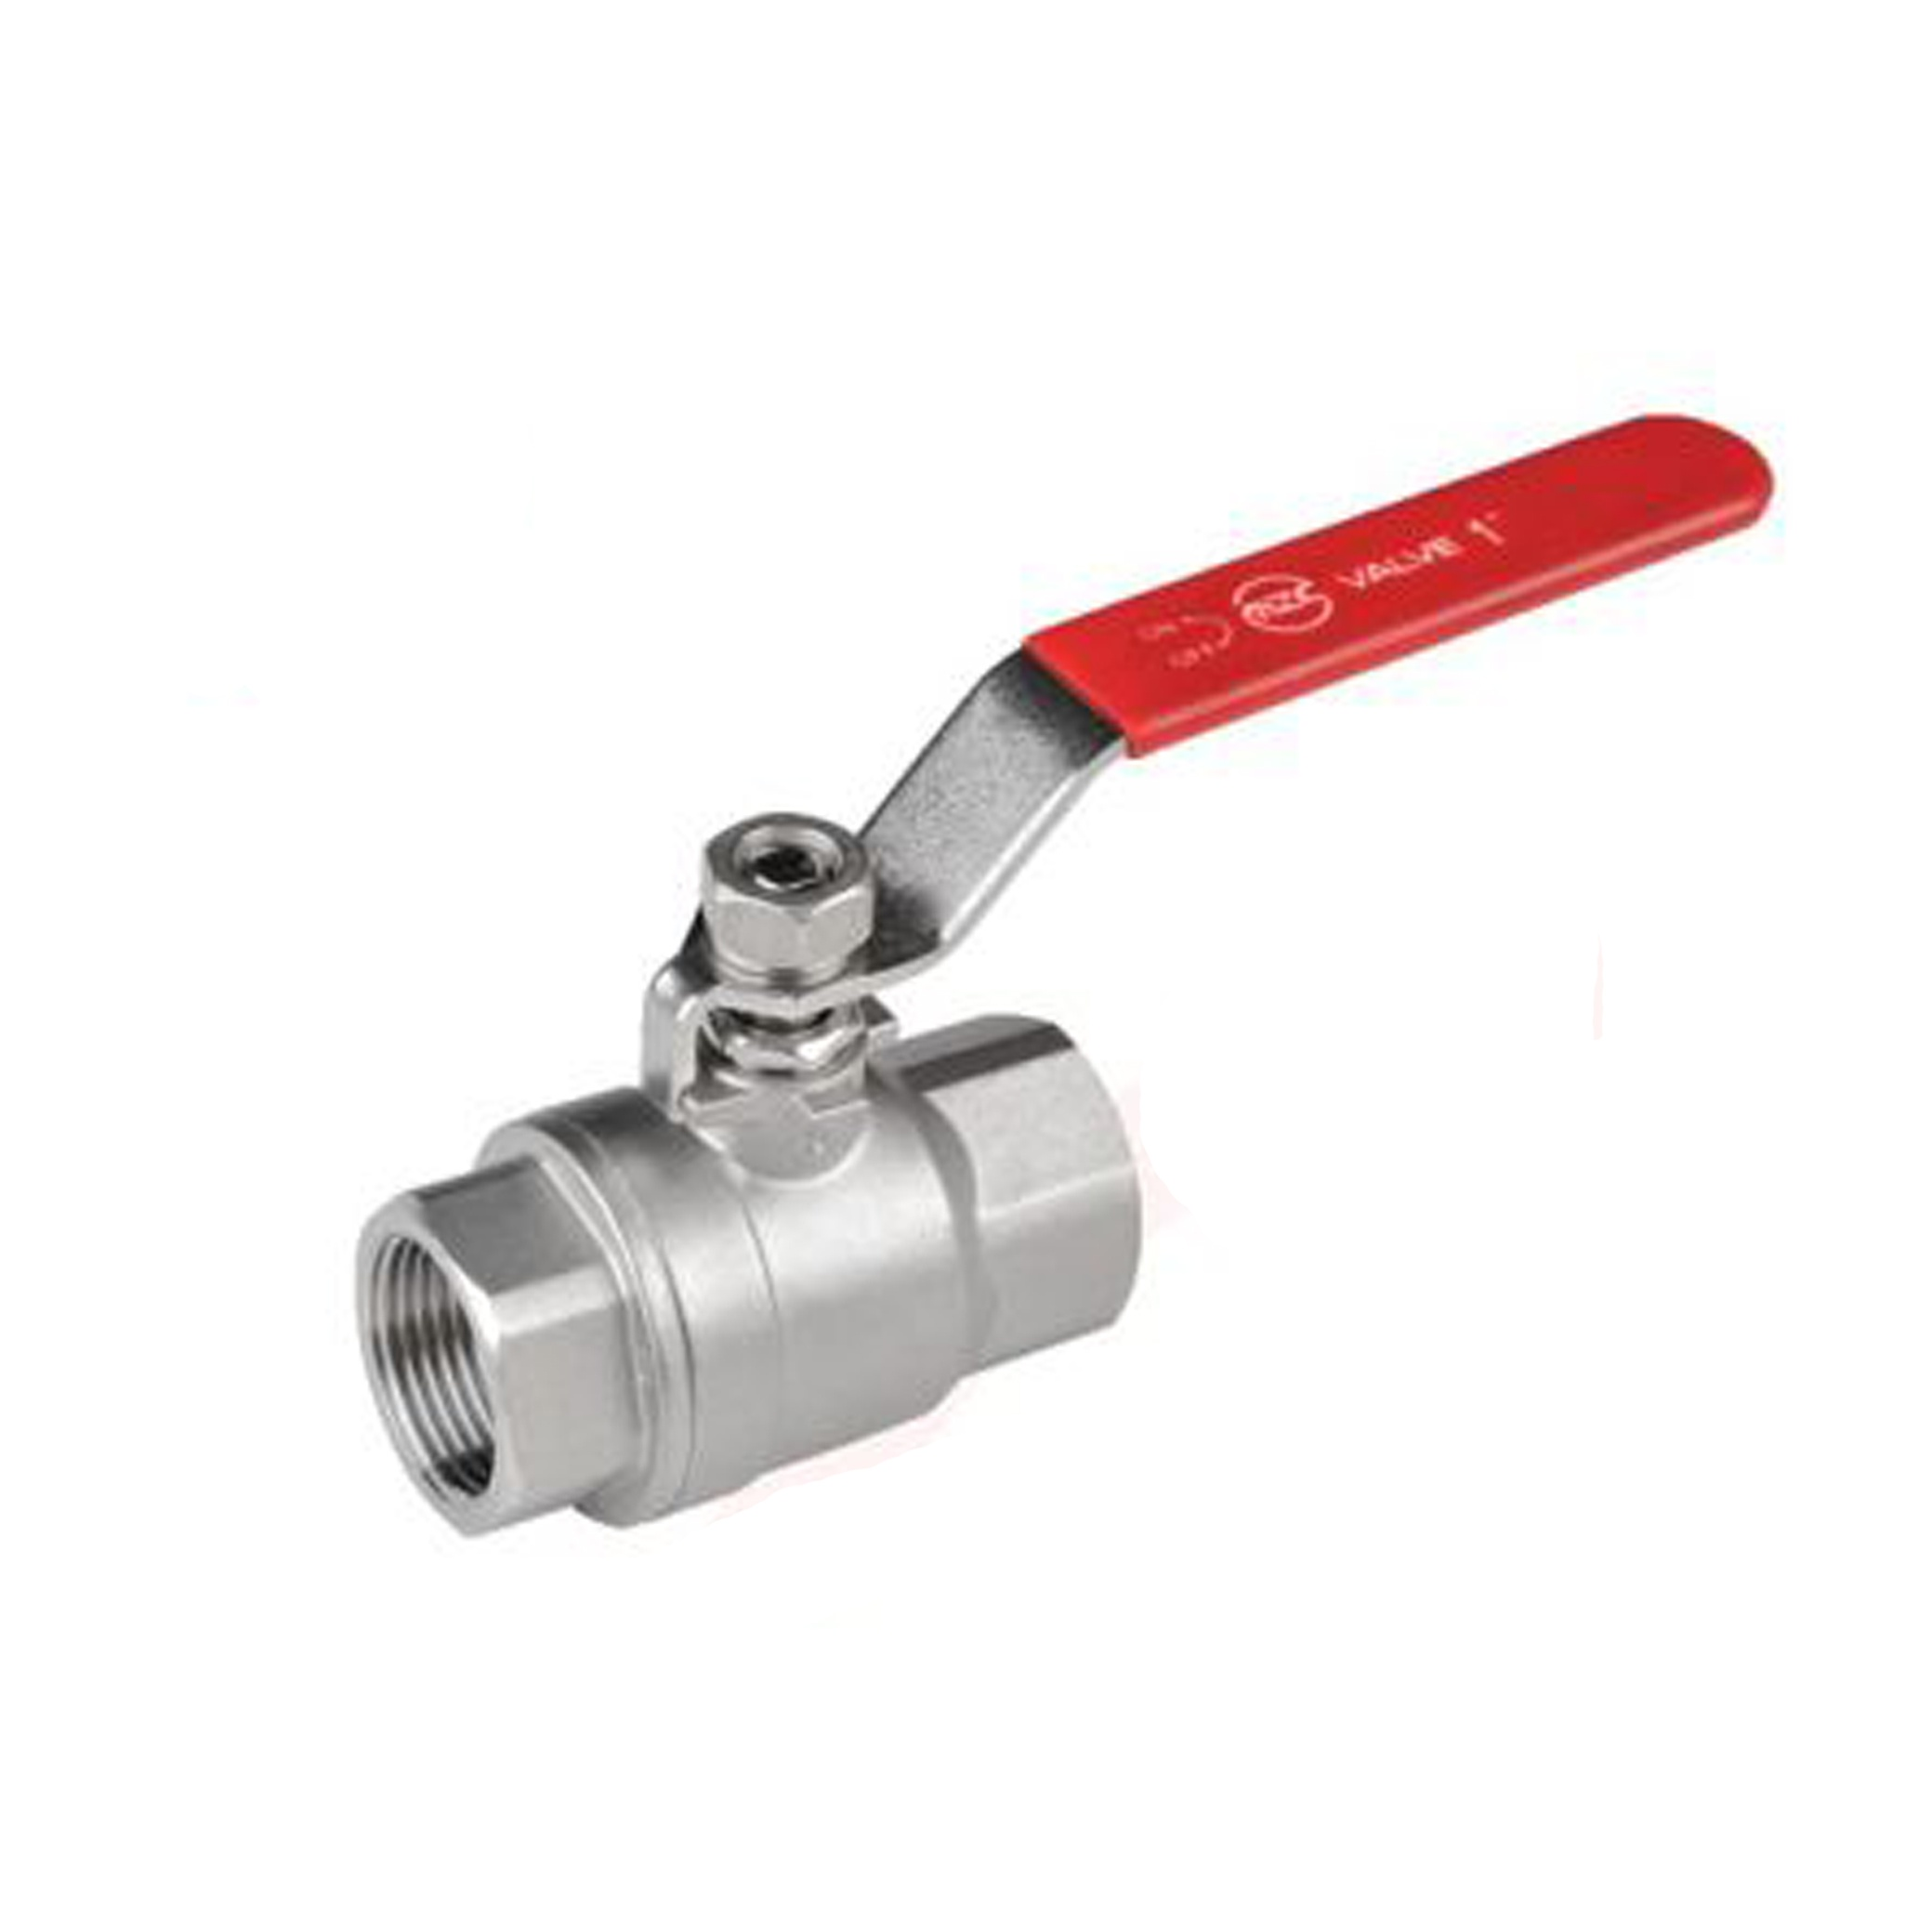 MZC Stainless Full Port Ball Valve 1000 WOG